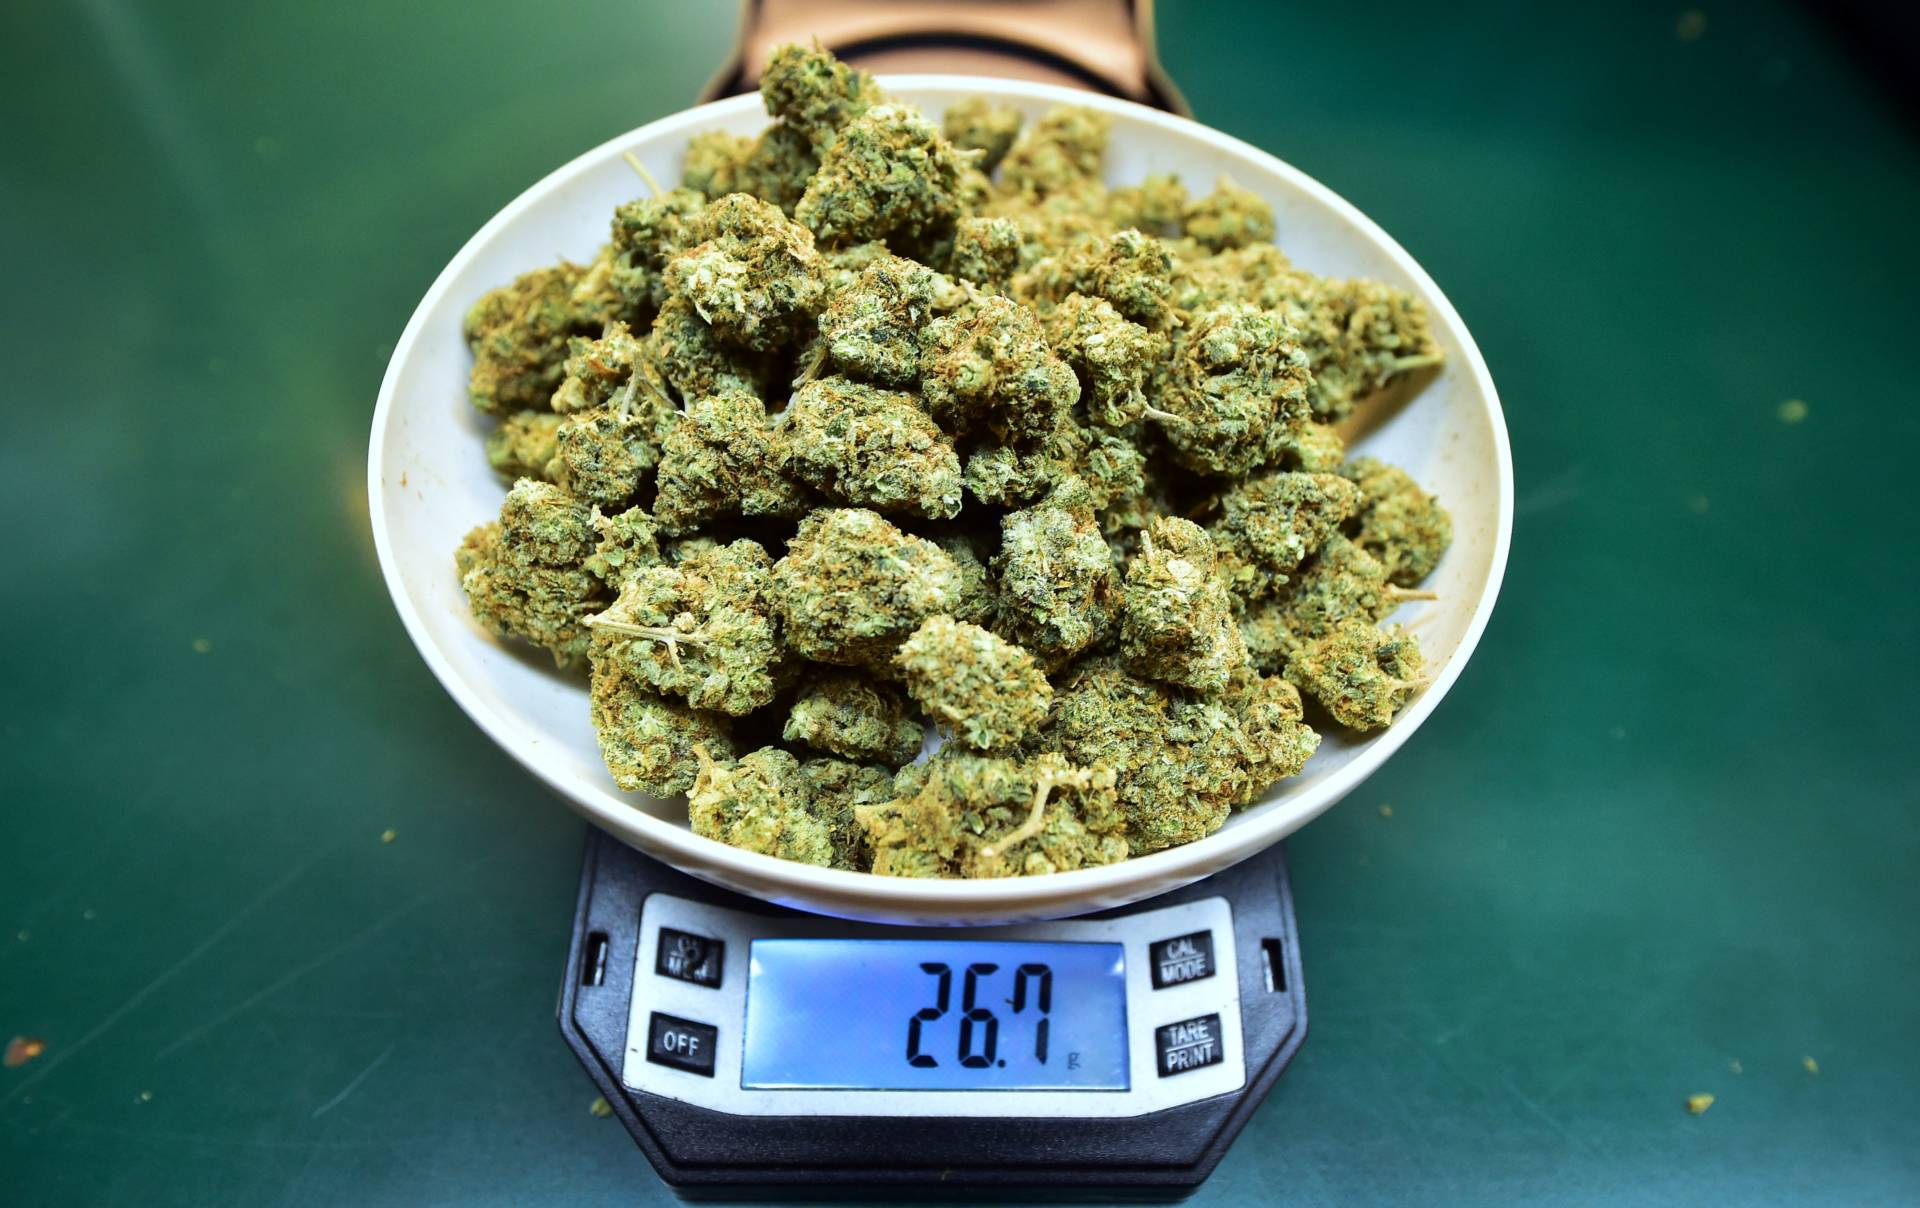 Marijuana cultivation and excise tax collections hit $48 million between April and June, state officials announced Wednesday, a jump from the prior three months but well below the windfall envisioned by the state. Frederic J. Brown/AFP/Getty Images